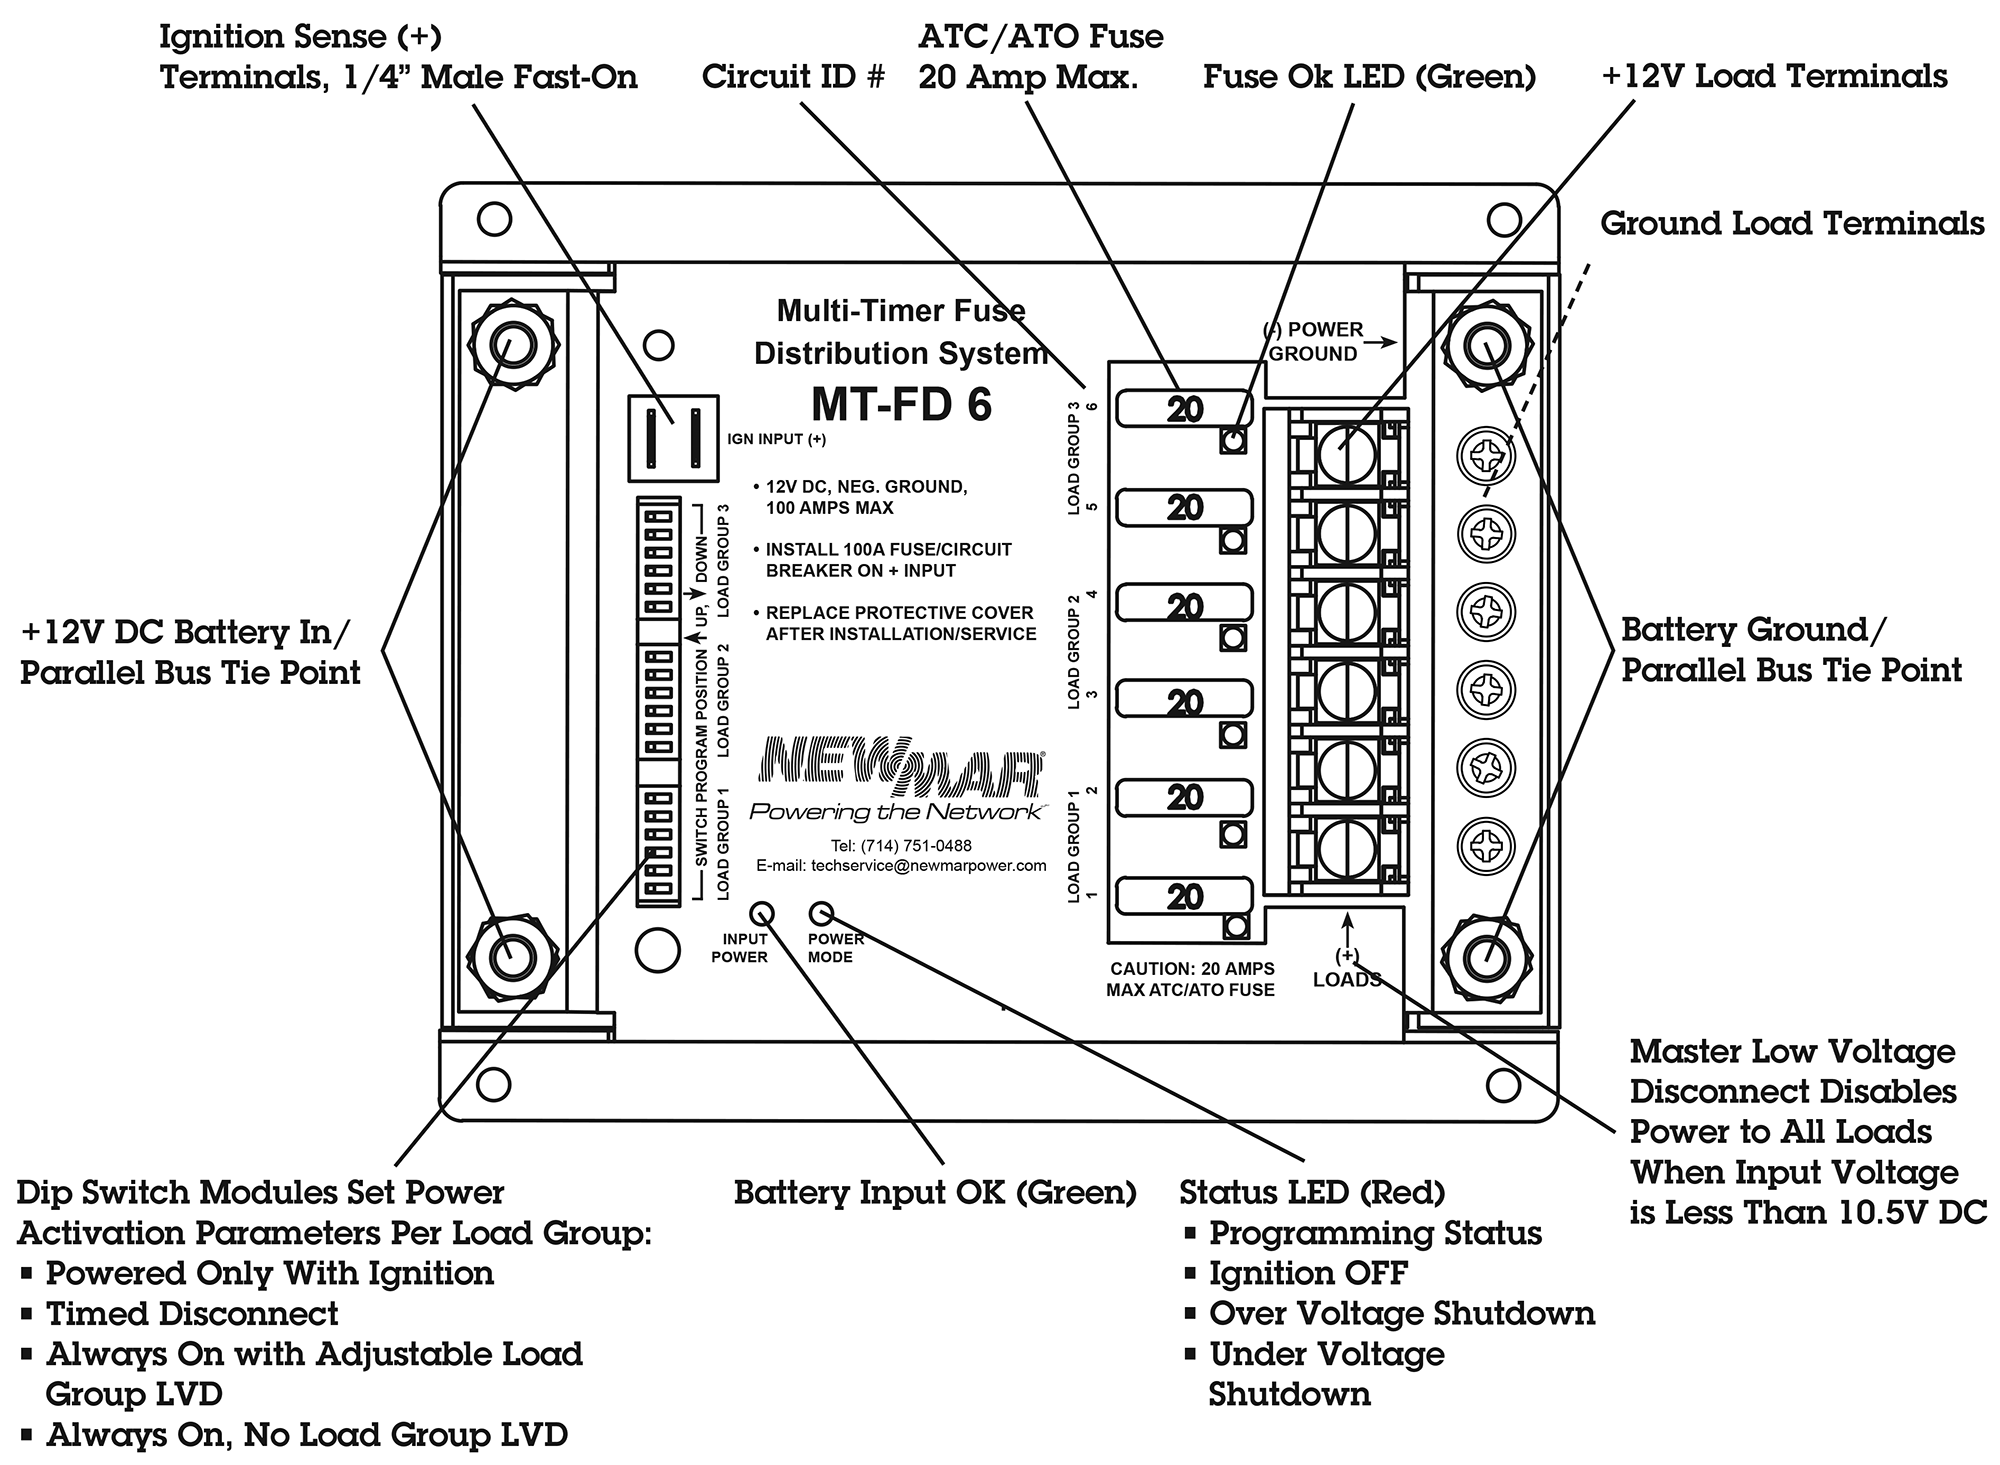 small resolution of 2003 newmar wiring diagrams wiring diagram g9 inverter gate schematic newmar inverter wiring